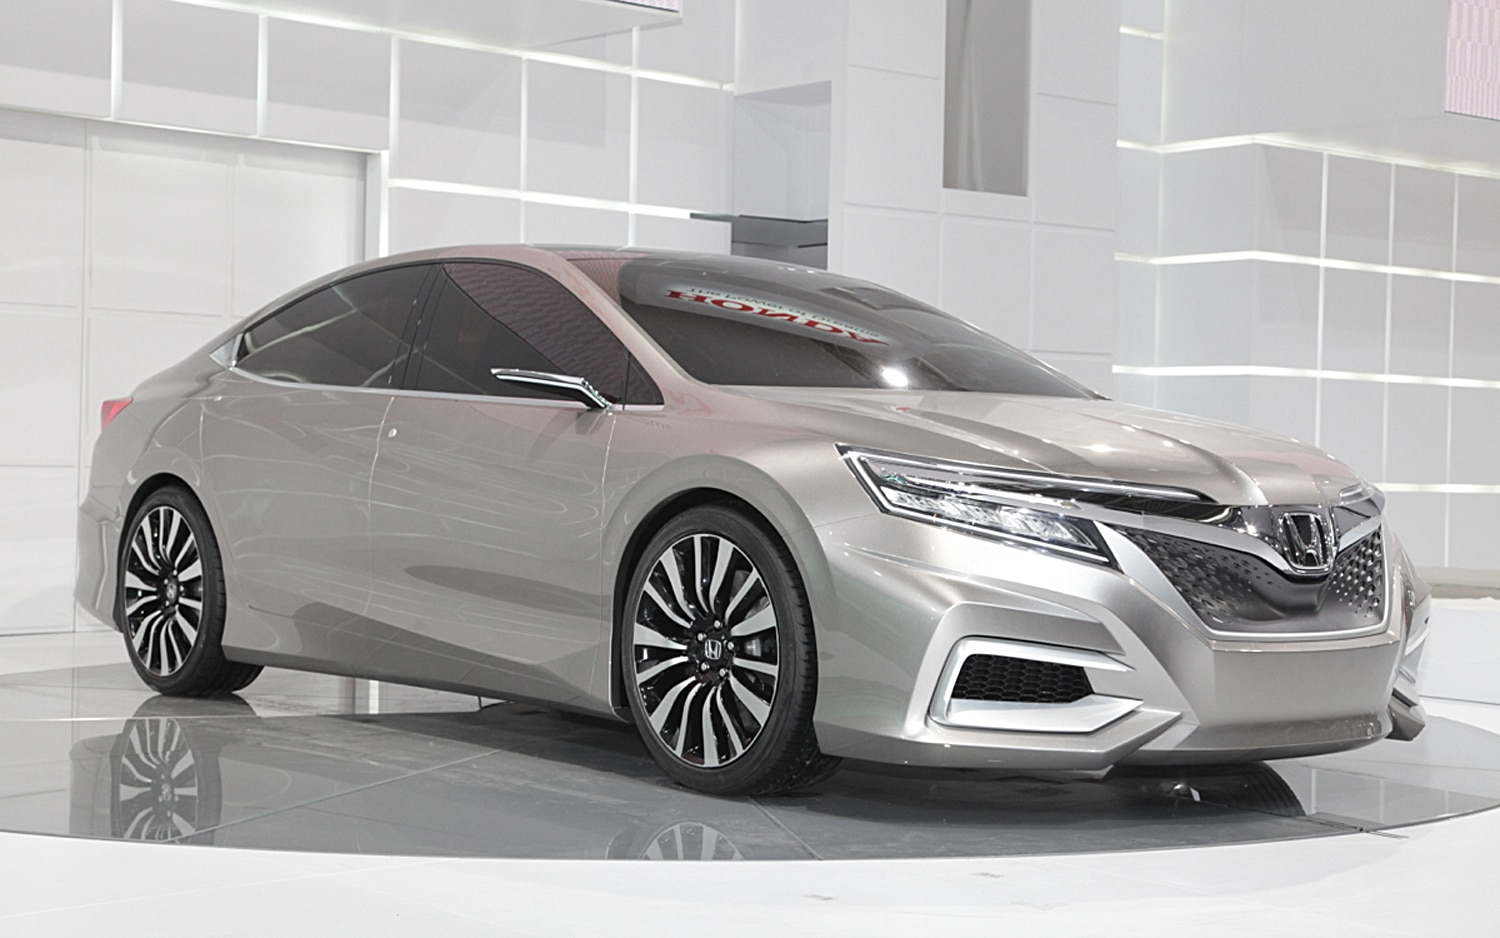 Does the Honda Concept C Give Sneak Peek of Future Accord?